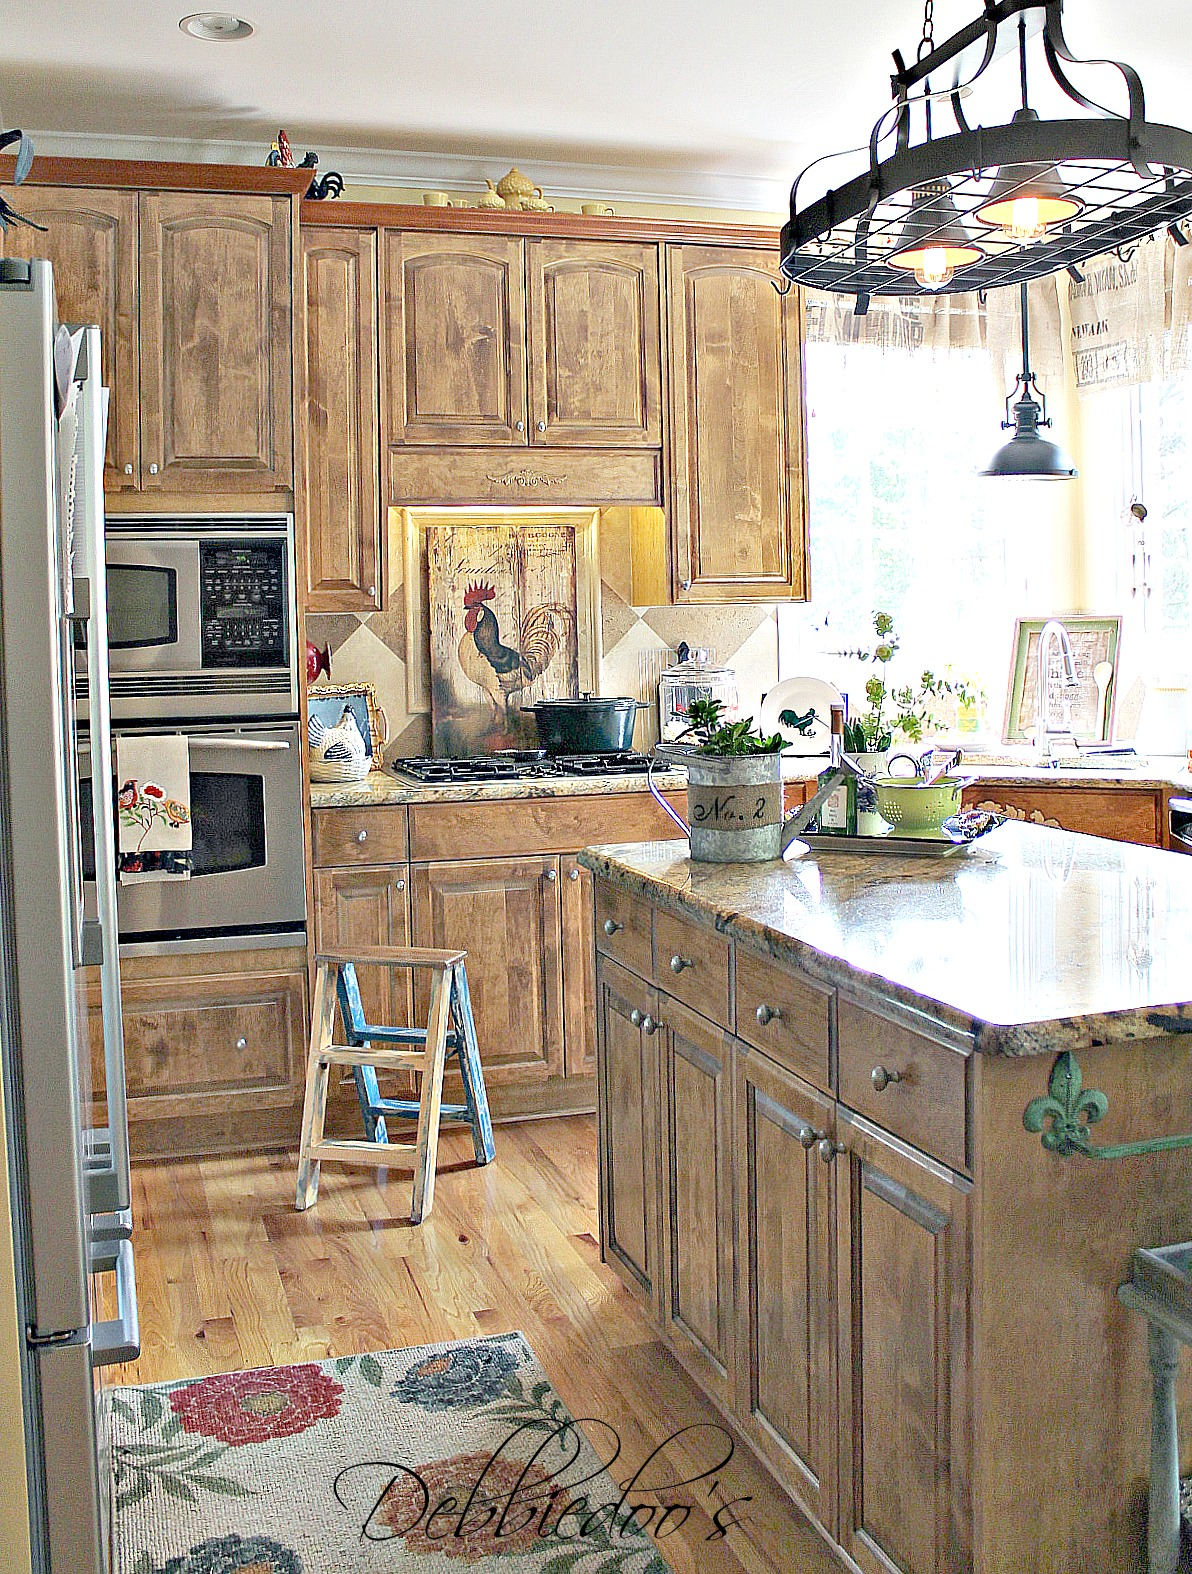 French country kitchen style freshened up debbiedoos - Country style kitchen cabinets ...